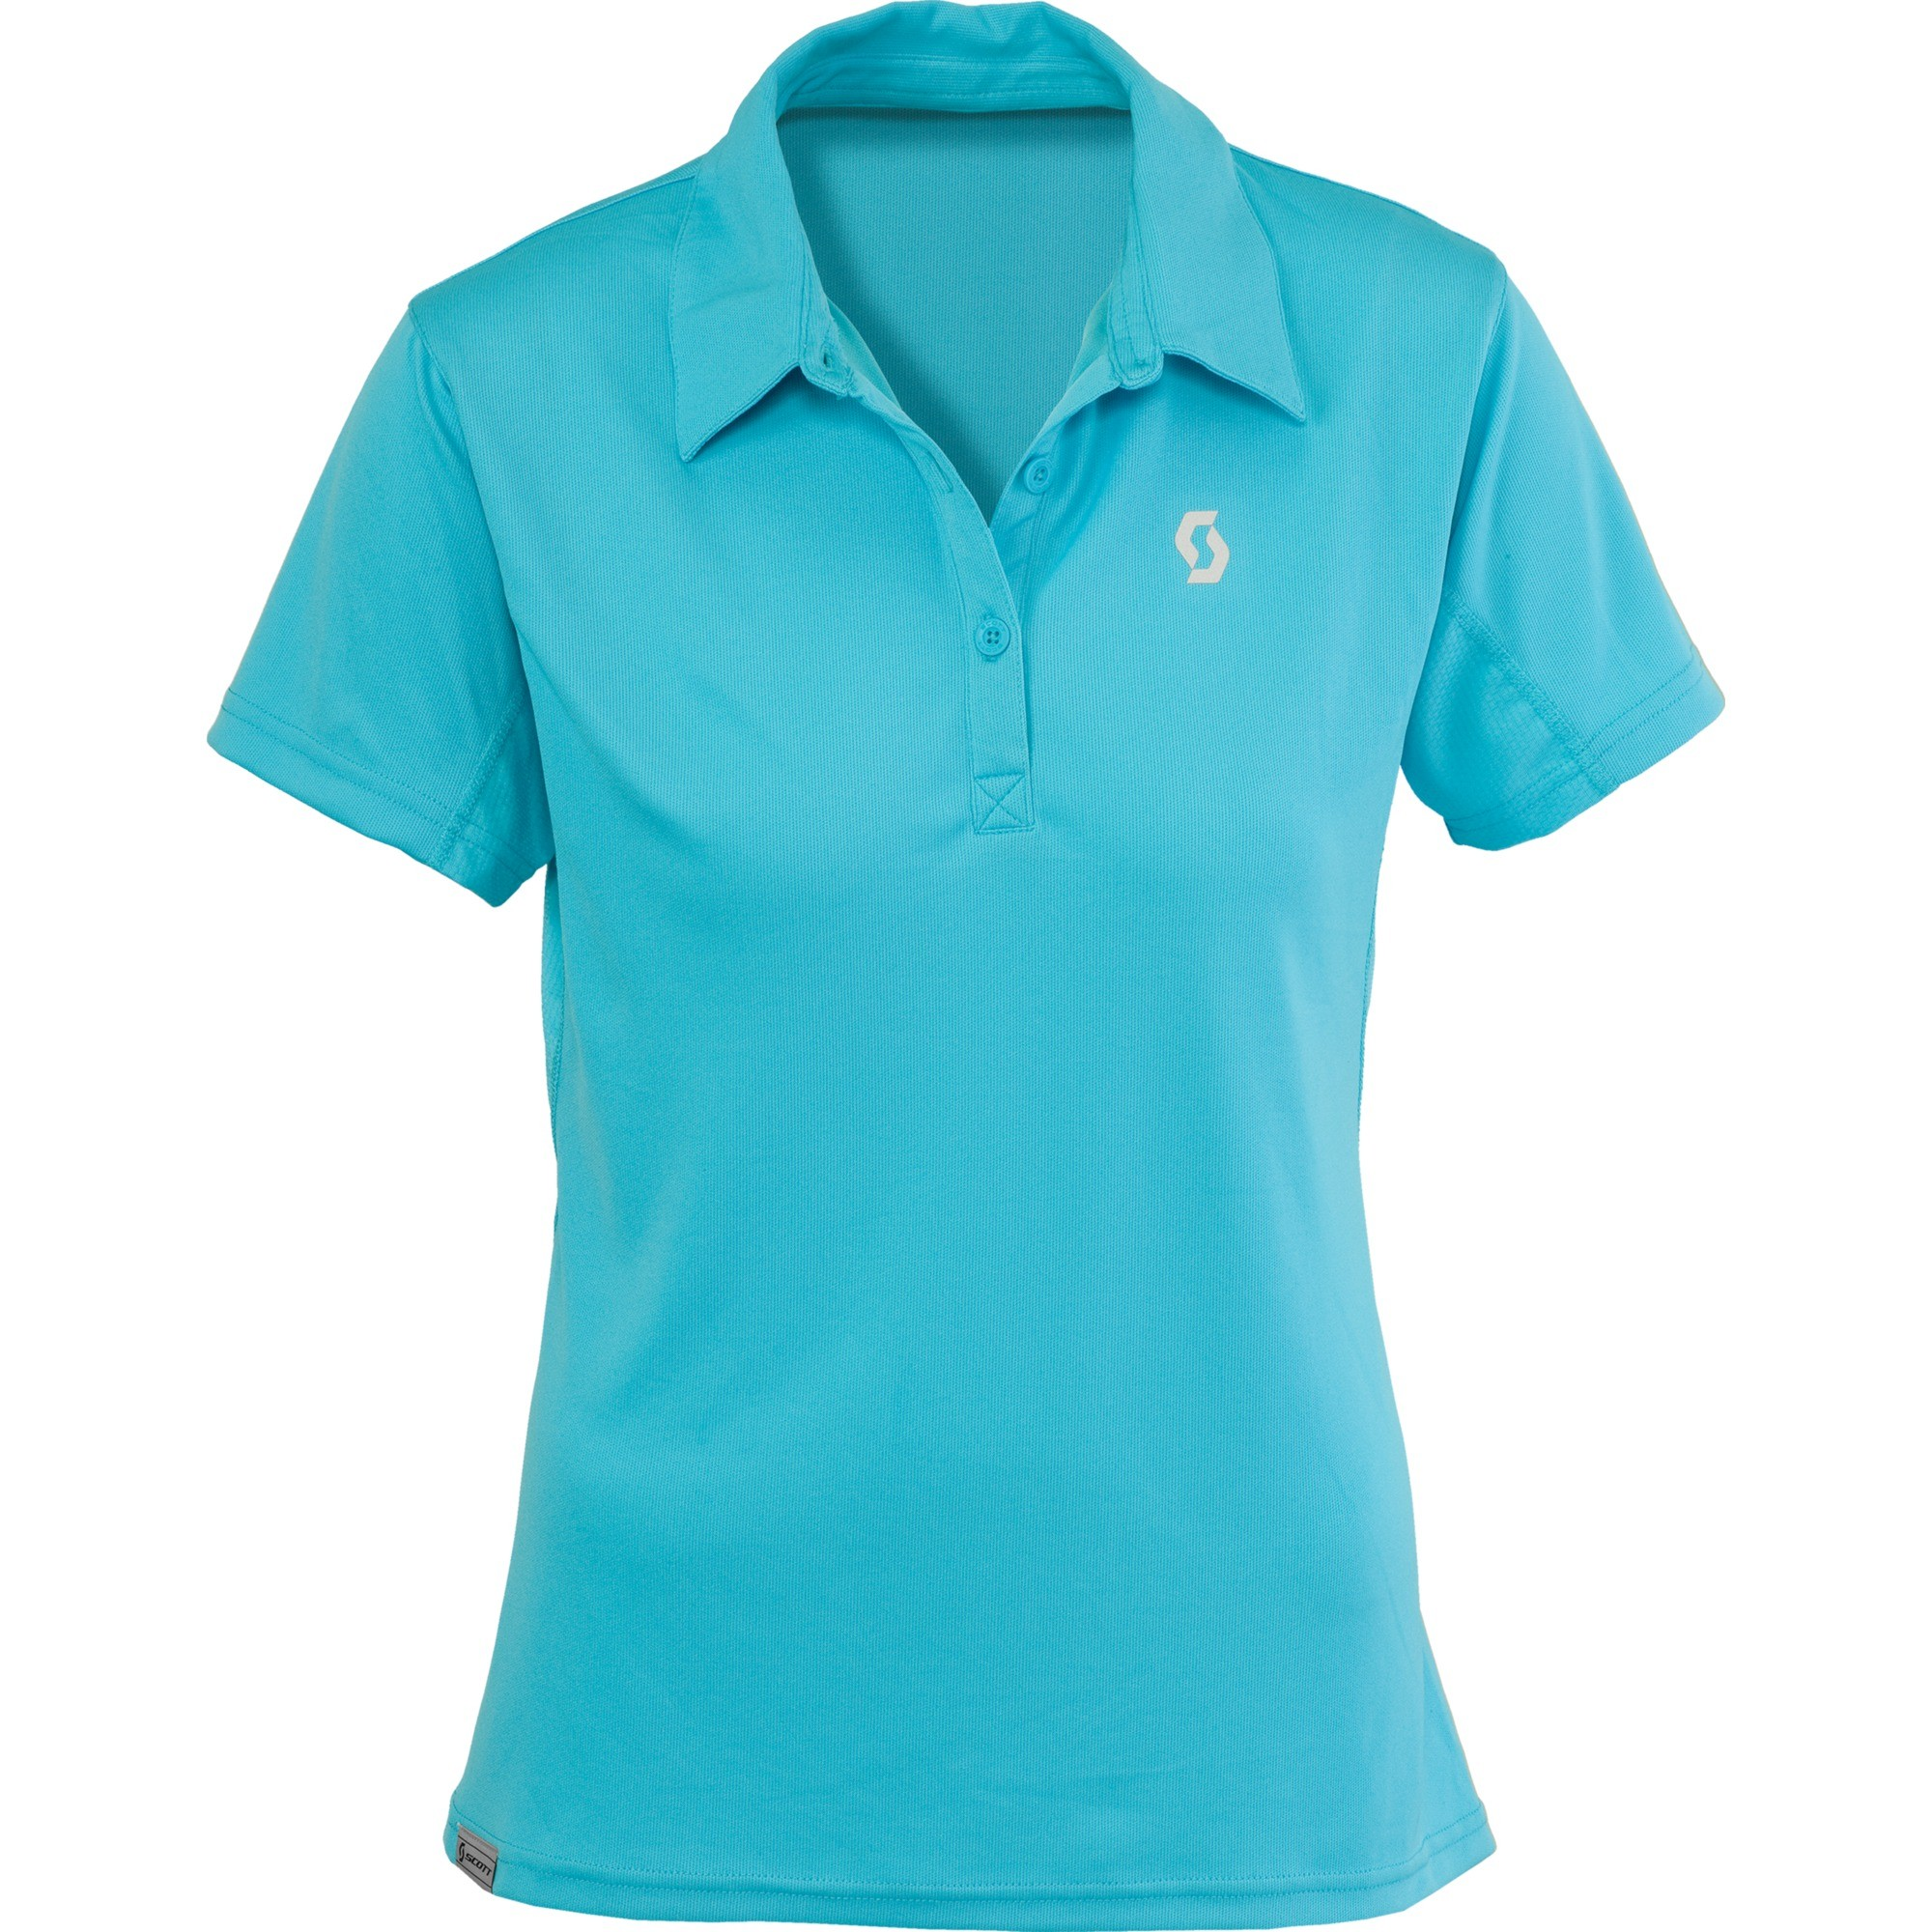 Womens polo tshirts in cotton creative india exports for Woman s polo shirts